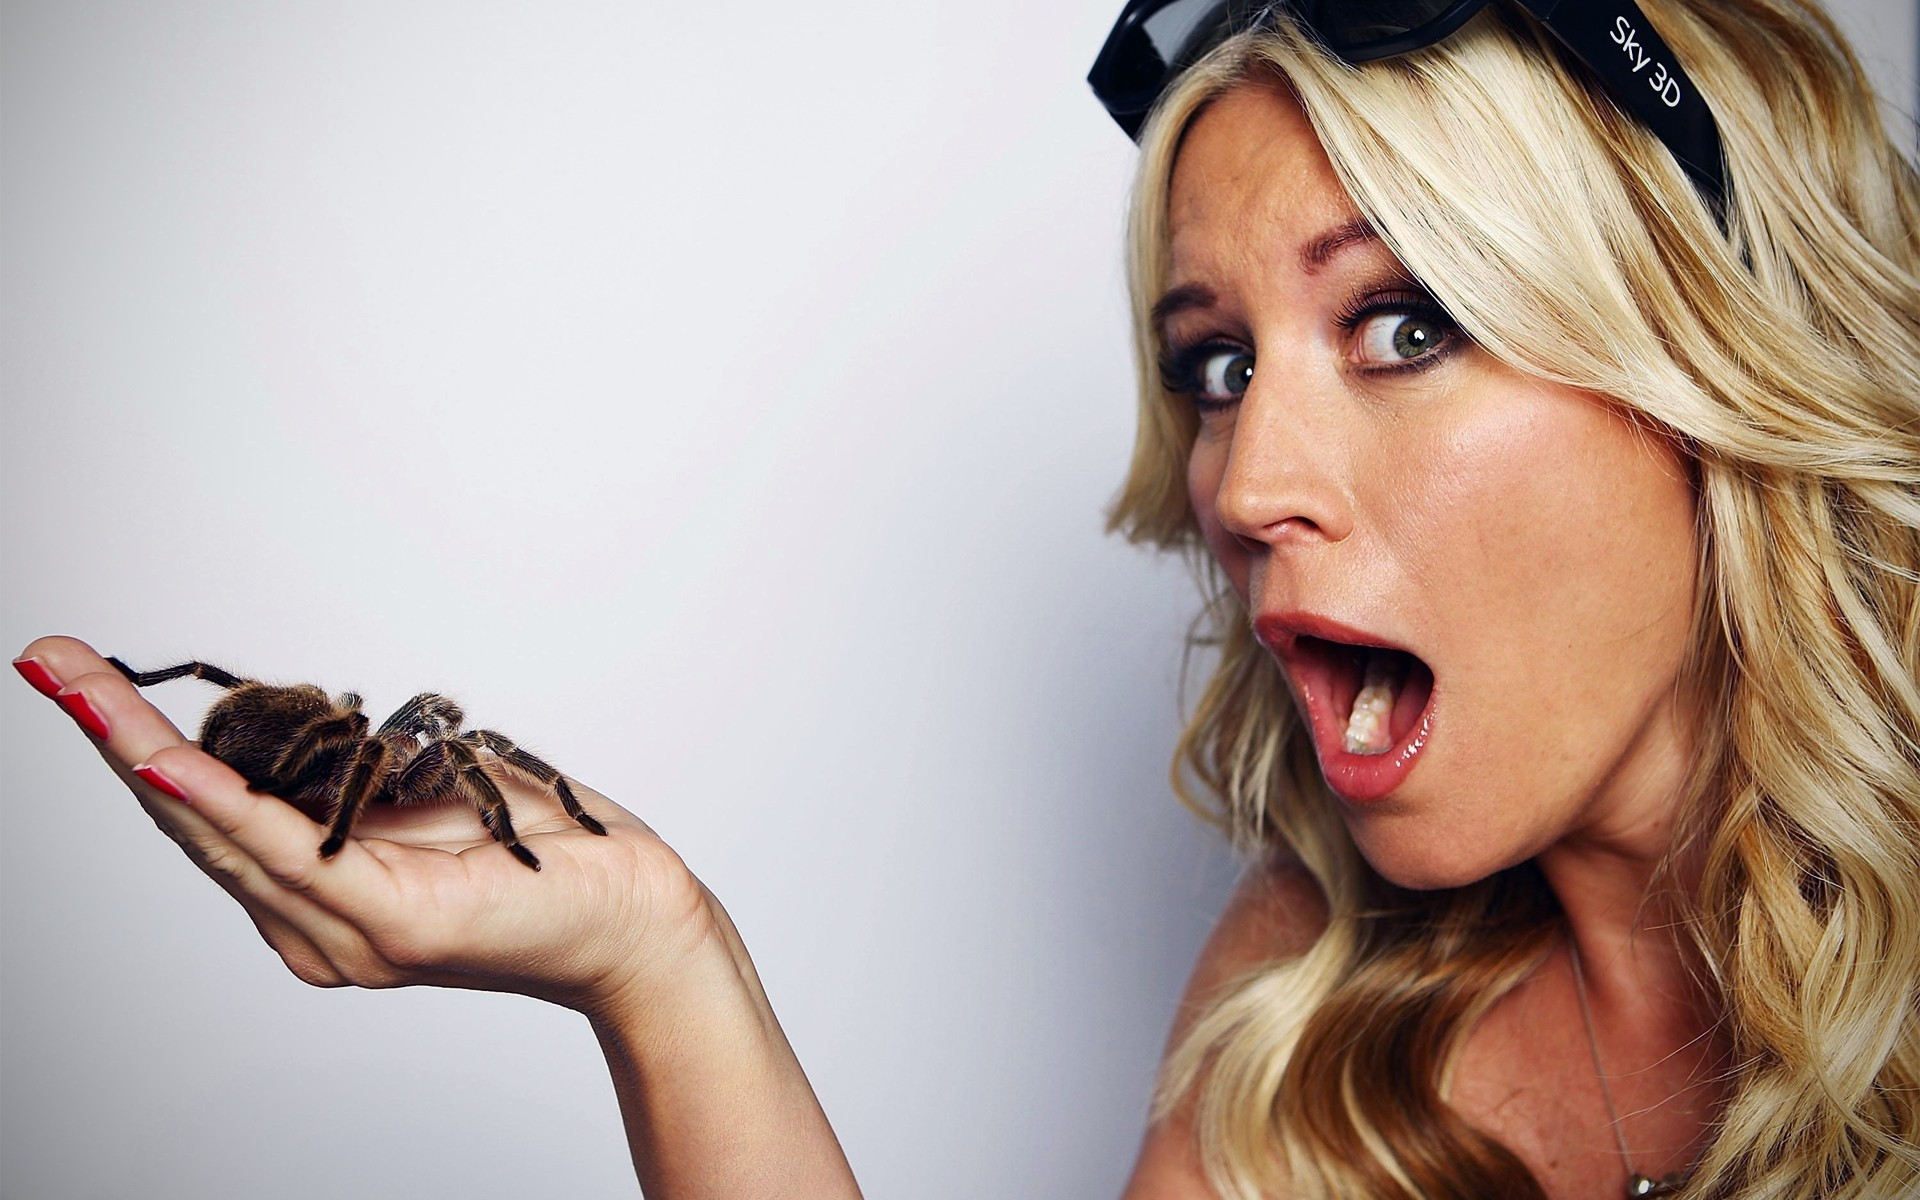 blondes woman insects Celebrity HD Wallpaper